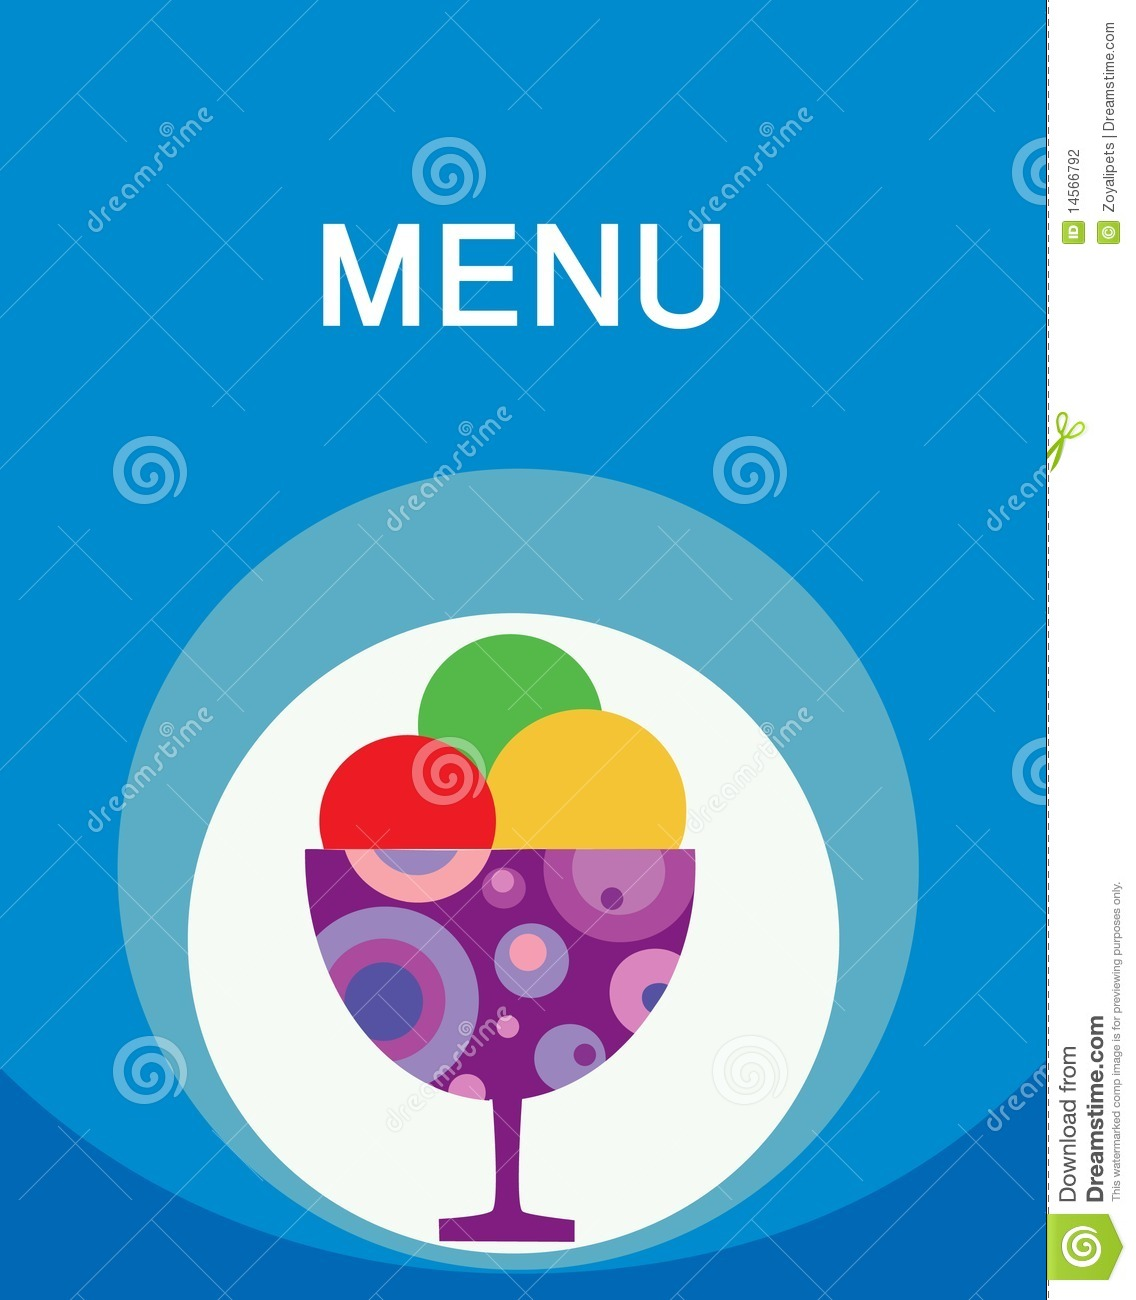 More similar stock images of colorful tasty ice cream menu template